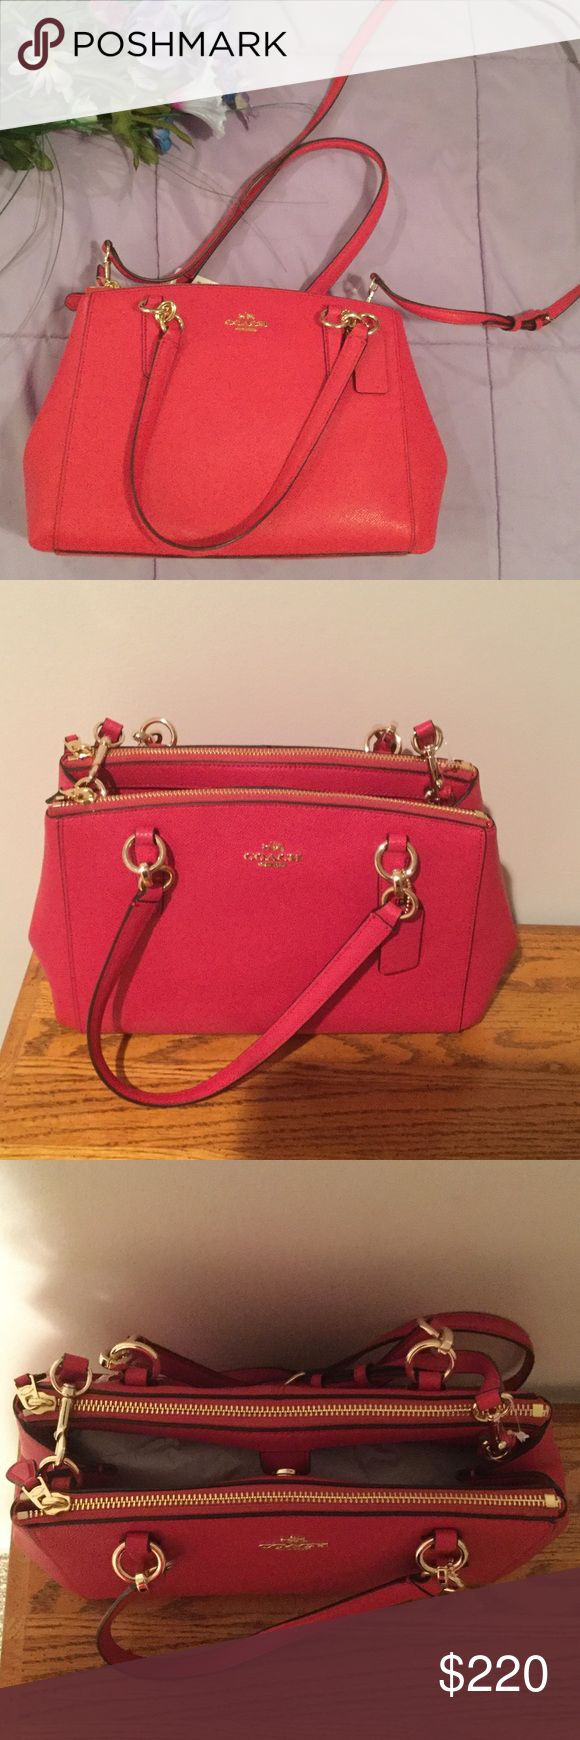 NWT Pink Coach Purse Gorgeous authentic bright pink Christie purse from coach. Has 3 compartments, the two outer compartments zip while the middle compartment has a clasp. Coach Bags